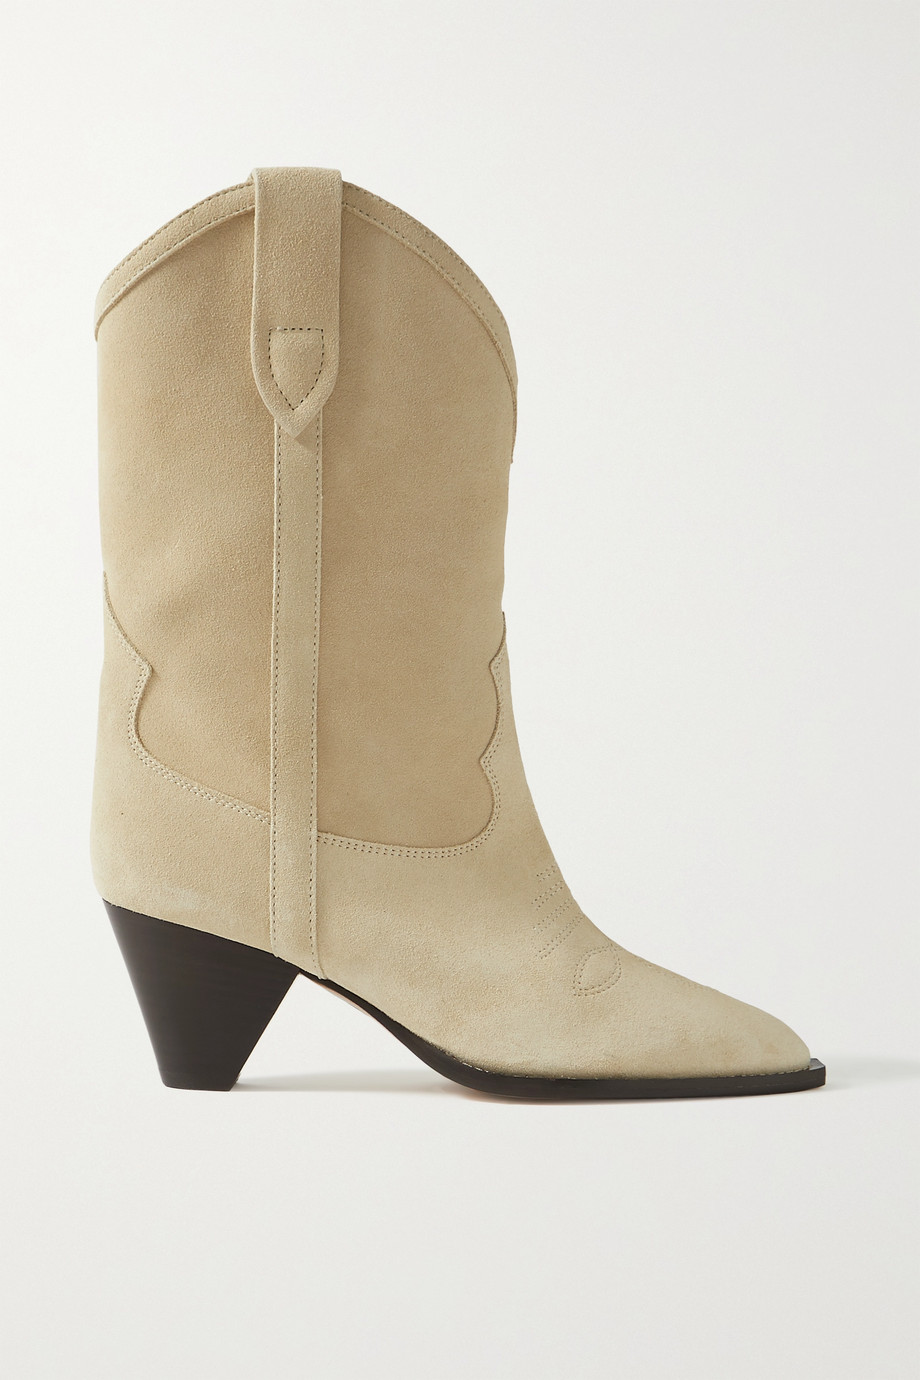 Isabel Marant Luliette embroidered suede ankle boots